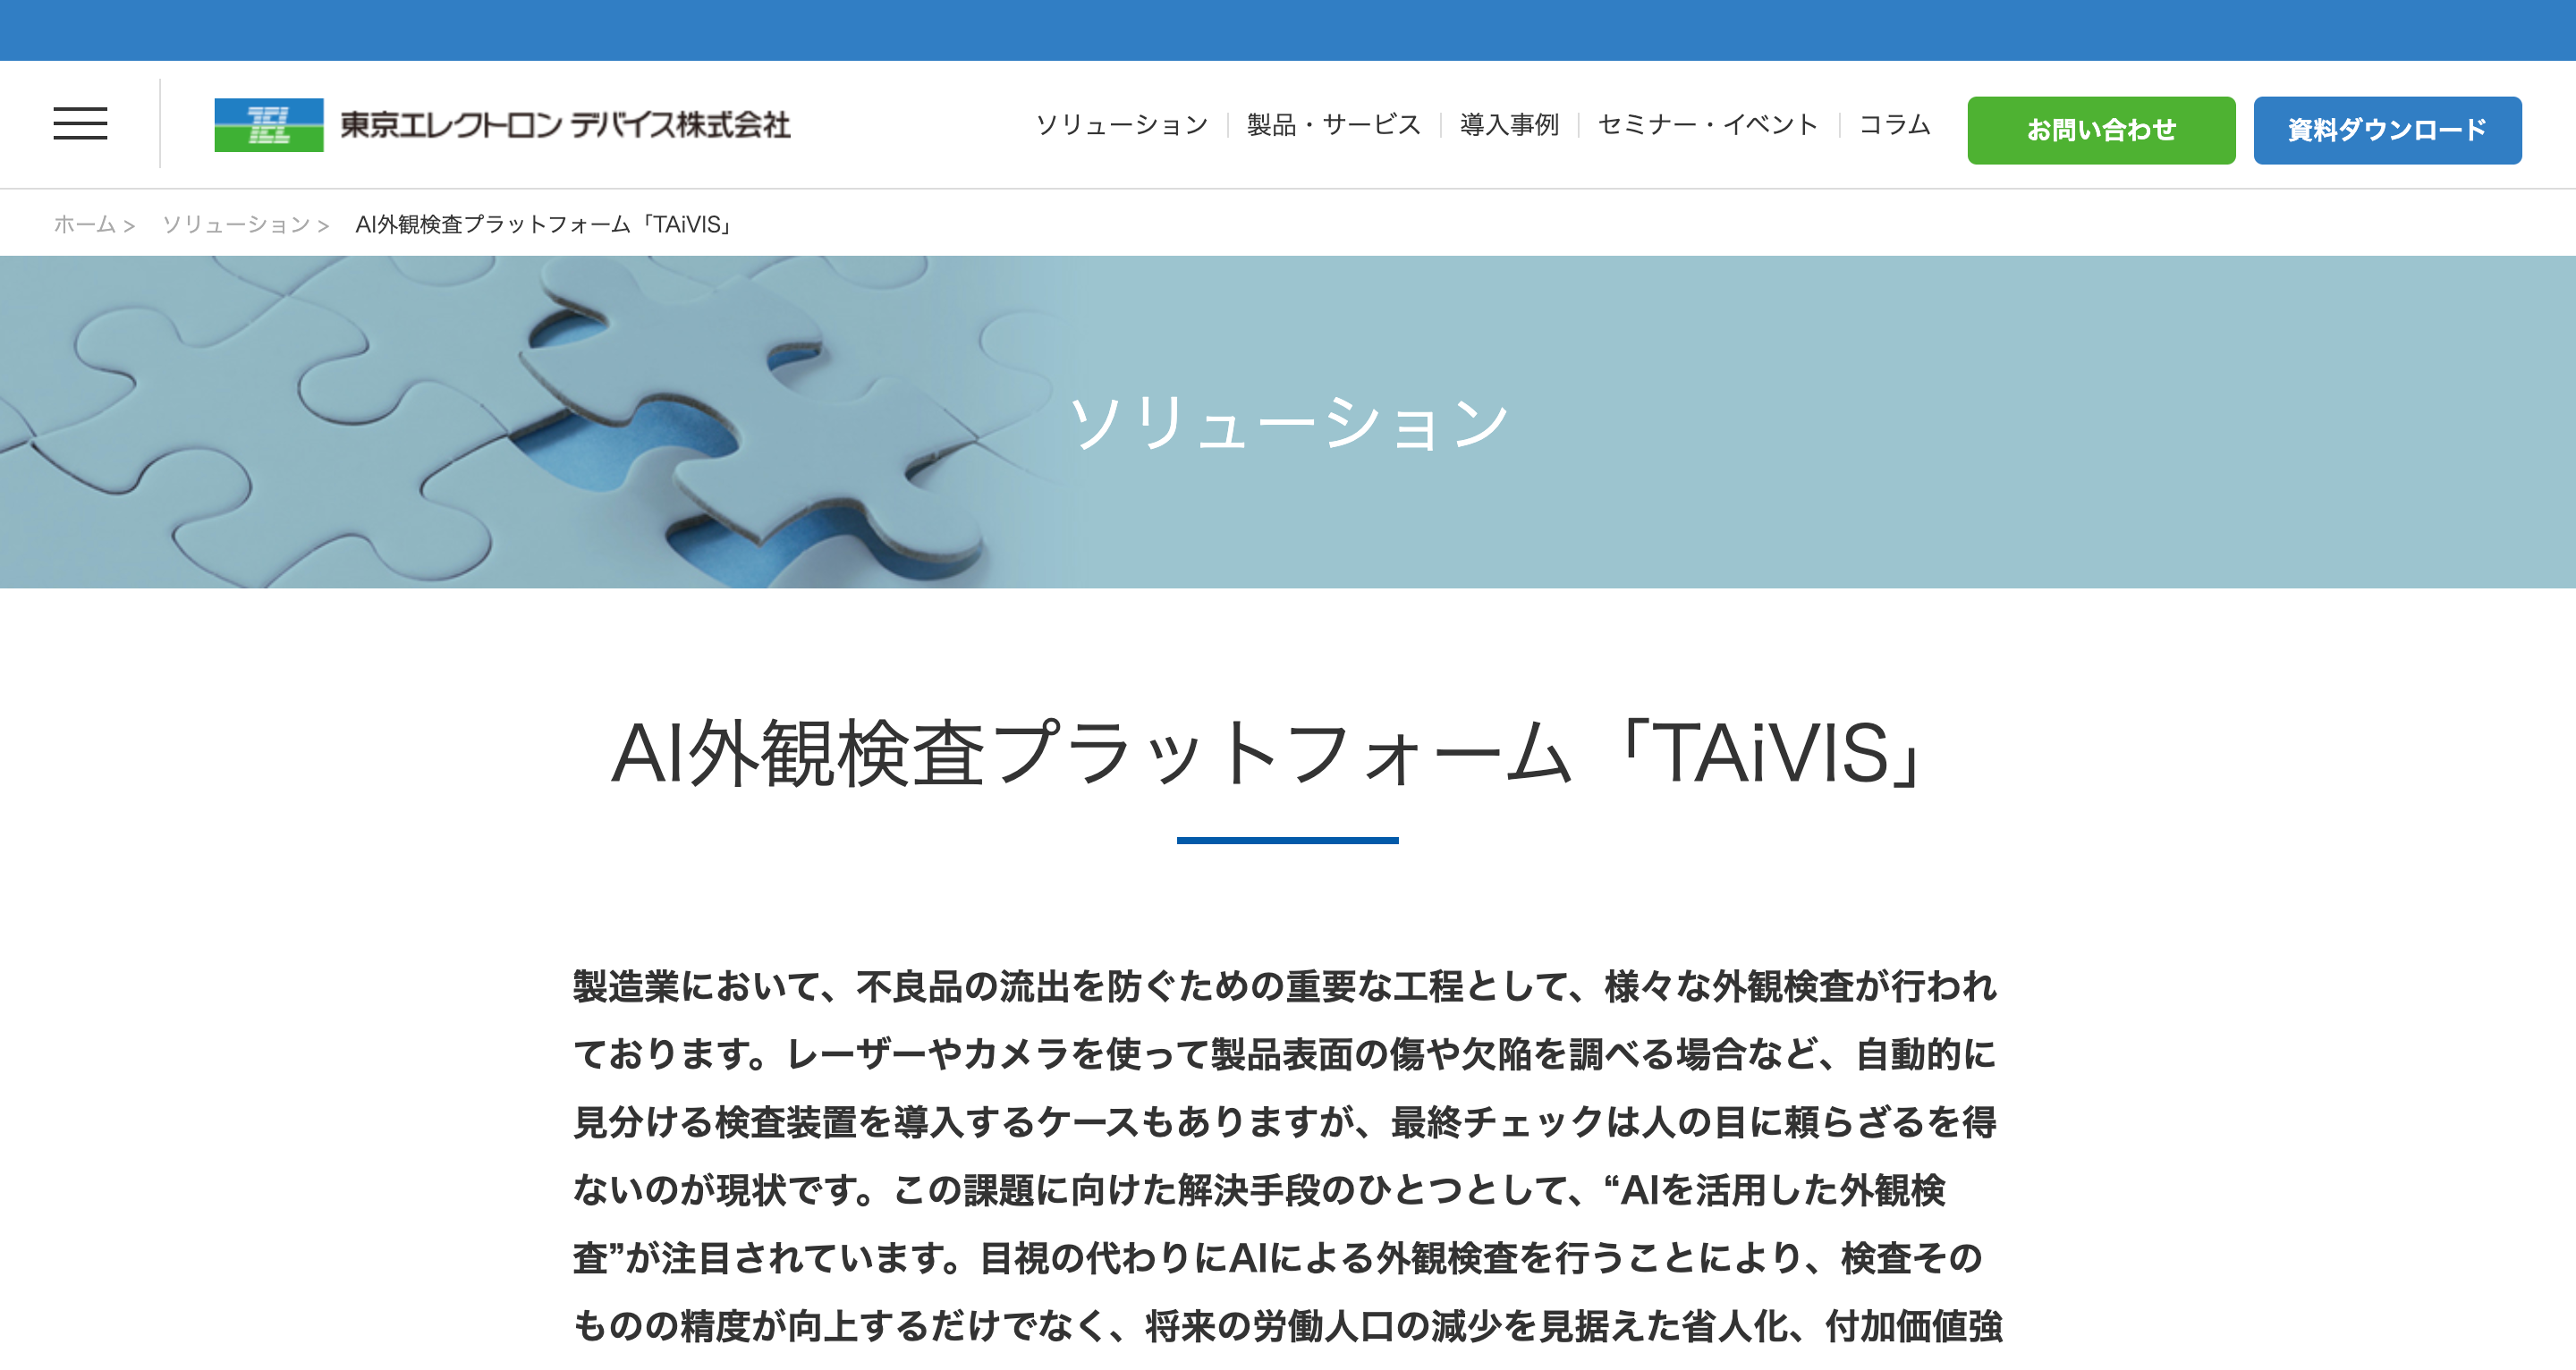 TAiVIS